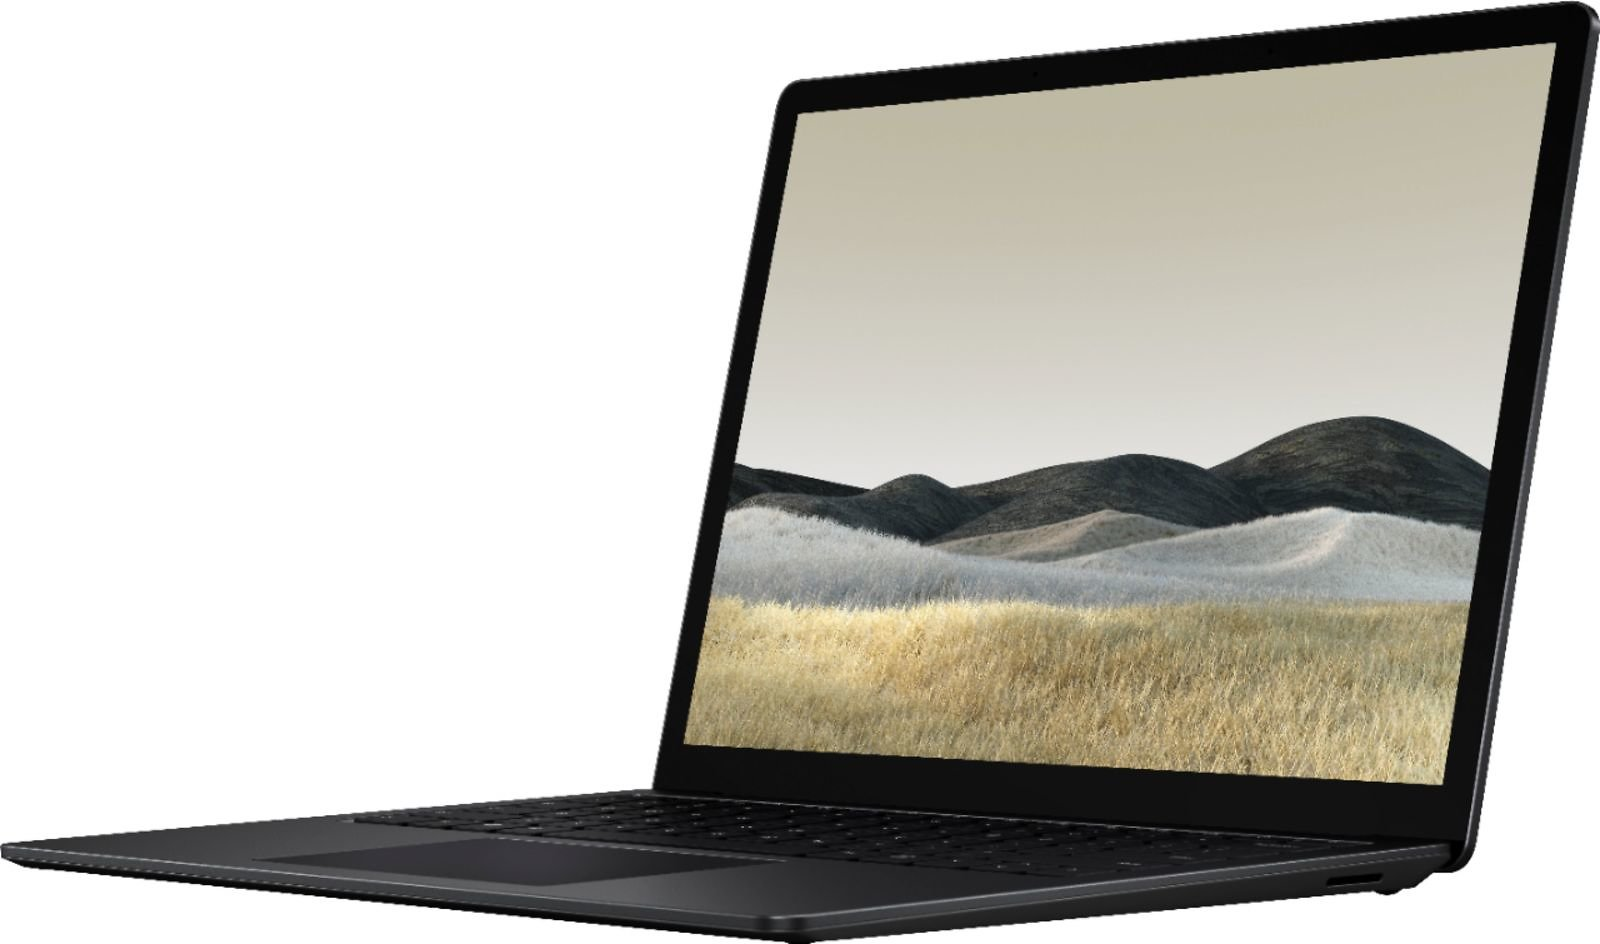 Microsoft - Surface Laptop 3 - 13.5